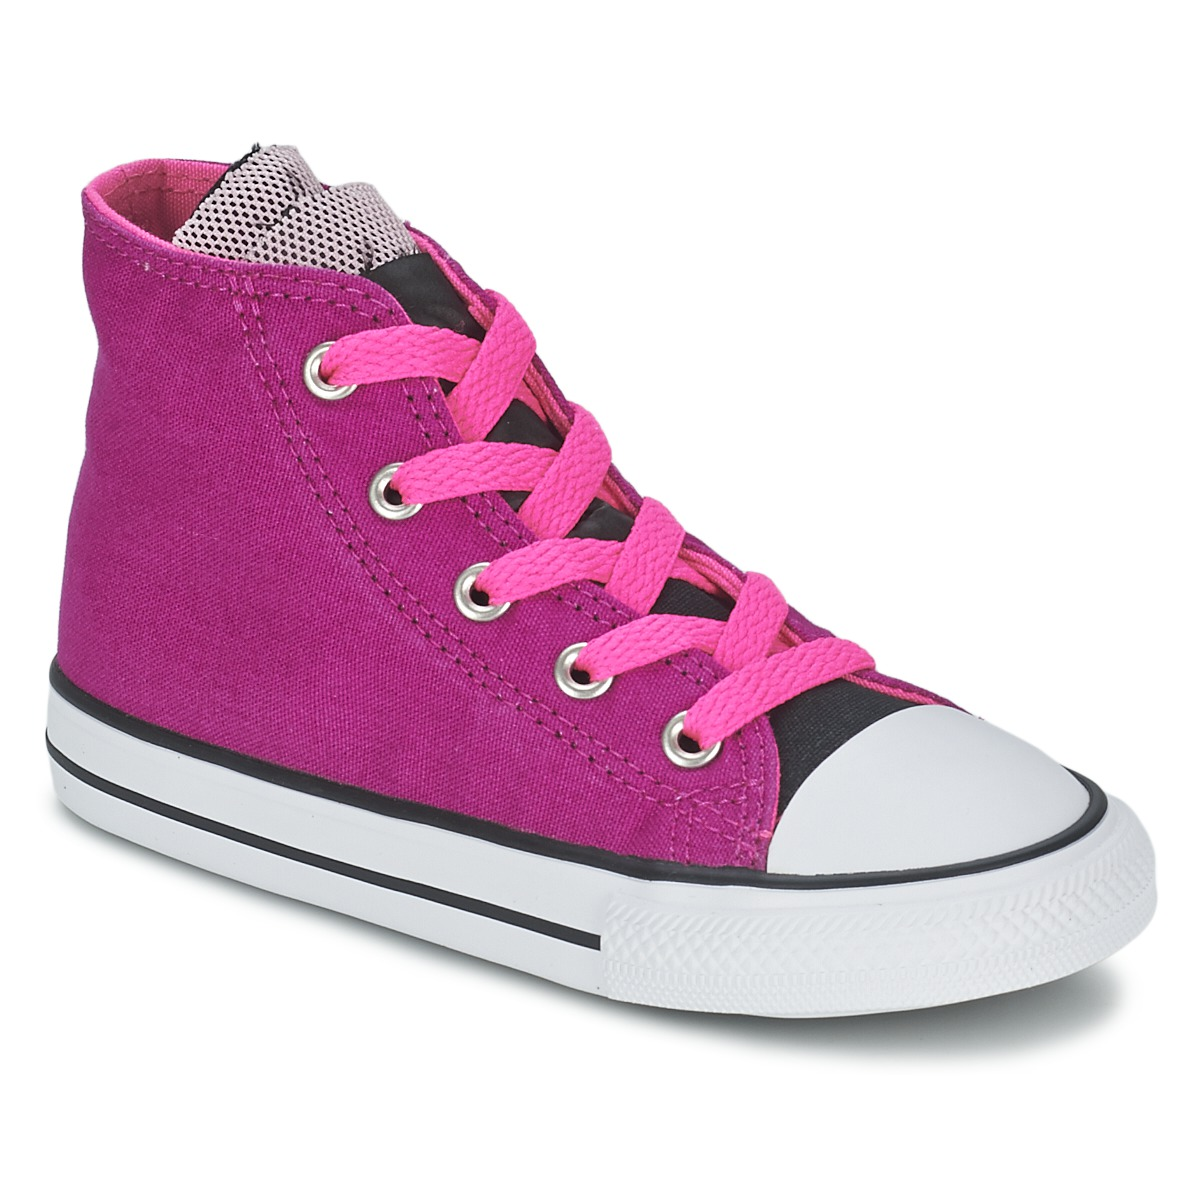 9b18b8c8aff2 Converse ALL STAR PARTY HI PINK SAPPHIRE Neon PINK BLACK Shoes Hi top  trainers Child low